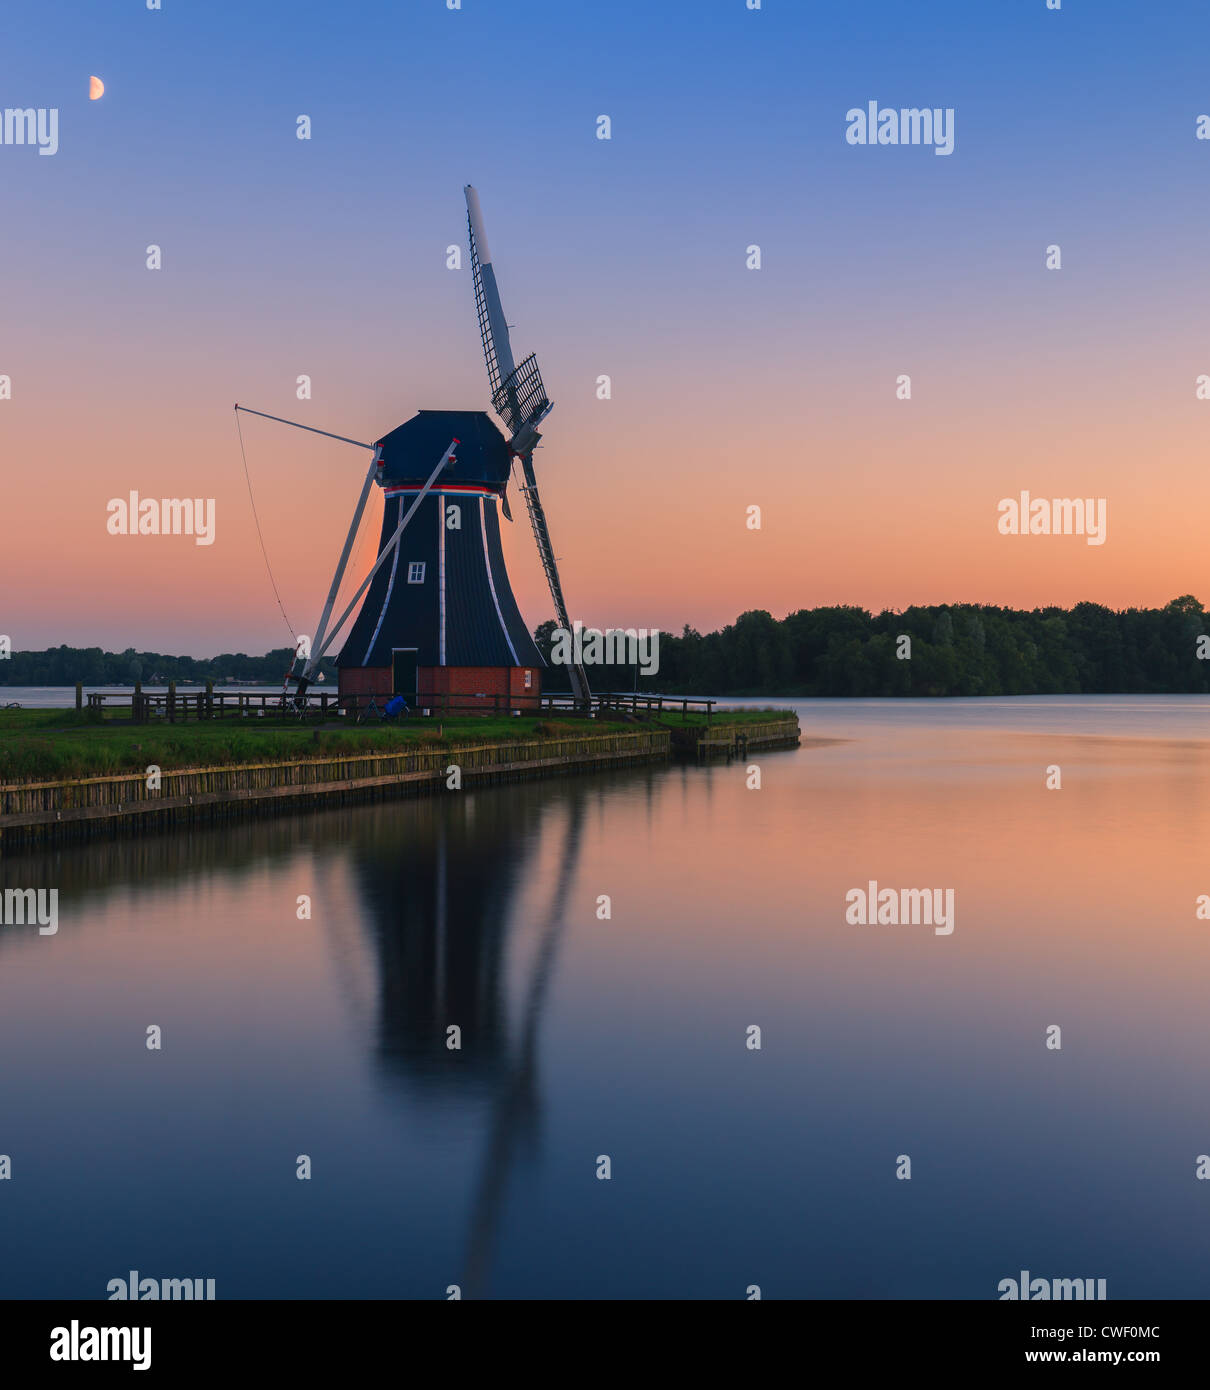 Windmill De Helper at Paterswoldsemeer right after Sunset - Stock Image